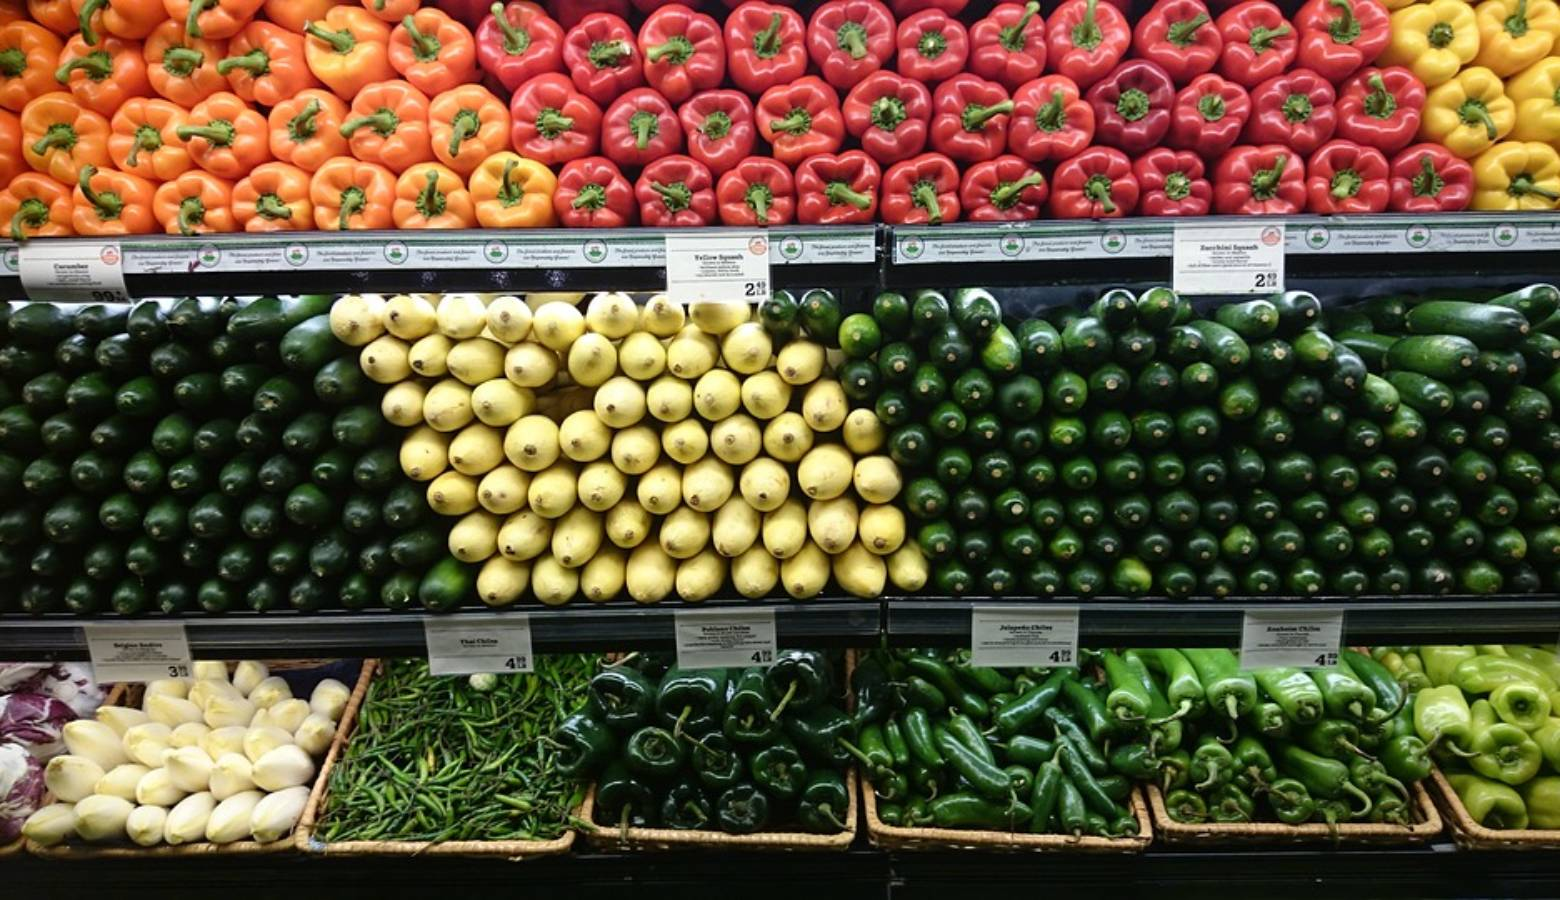 Food Shelf Vegetables Supermarket